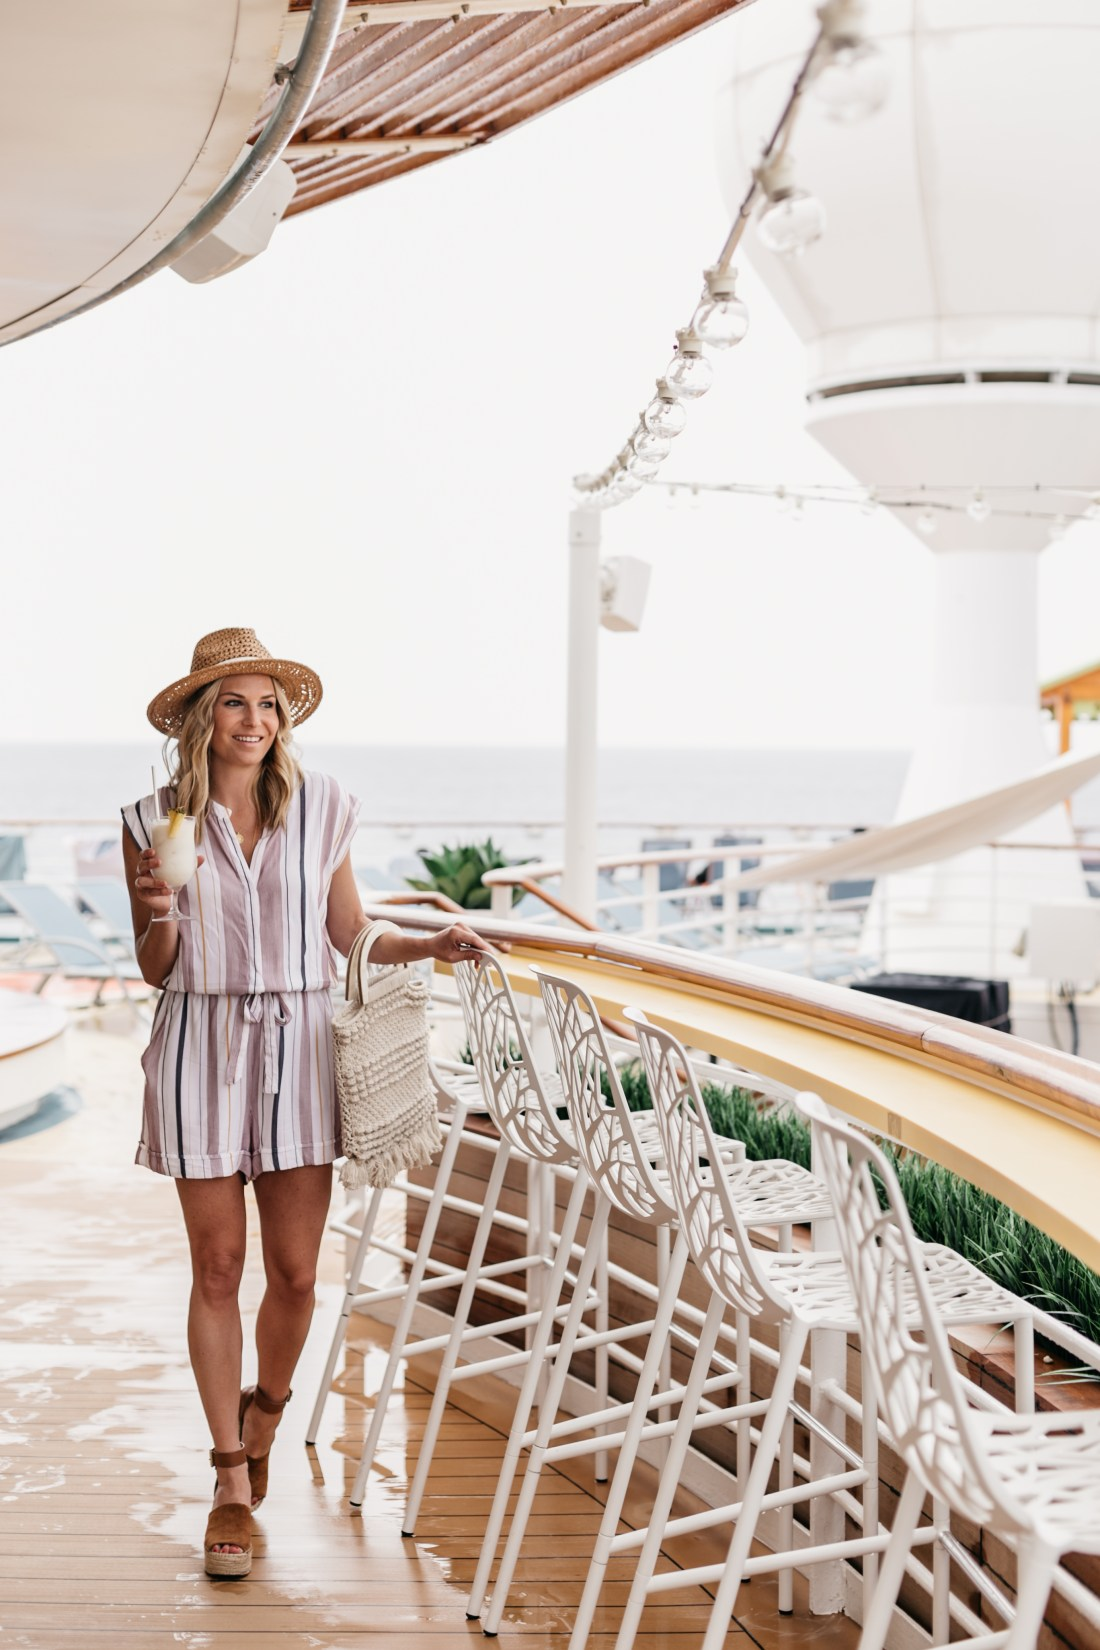 ROYAL CARIBBEAN CRUISE & A Cruise Outfit: Striped Romper // Straw Hat // Tan Espradrilles // Macrame Bag